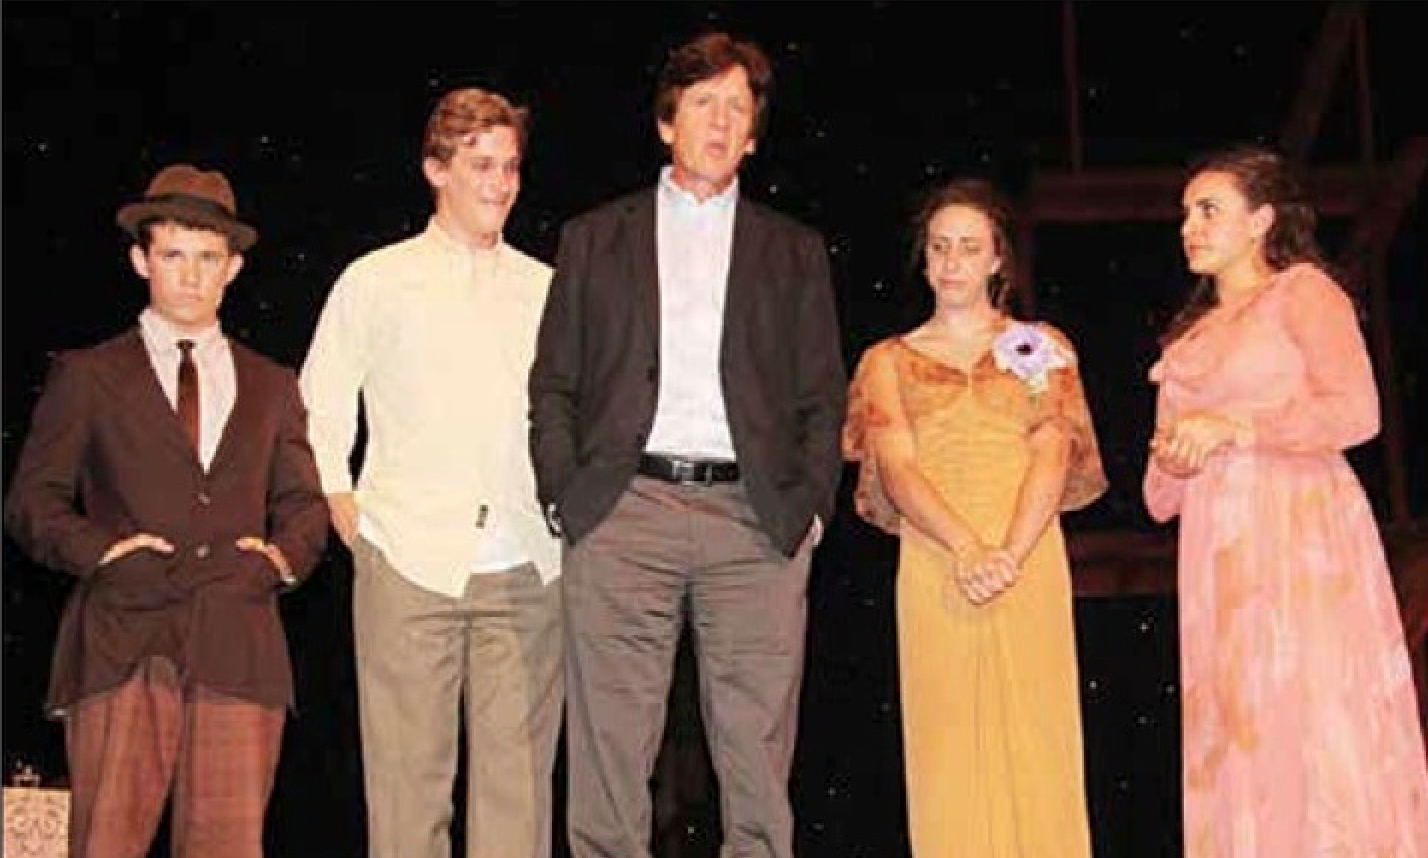 (from left) Jordan Lemmond, Clayton Barry, Otto Layman, Emma Robins and Elli Harb express real sadness on stage at the culmination of an intense four-year relationship that encompassed the high-schoolers' formative teen-age years and some of the highest points in Otto's 17-year run at SBHS. The four seniors were featured in The Glass Menagerie, the last performance of the school year, but there were twenty-five graduating Performing Arts seniors in all, most of whom were last seen singing, danc-ing, and cutting up on stage in the school's most successful and well-attended production ever: Monty Python's Spamalot.